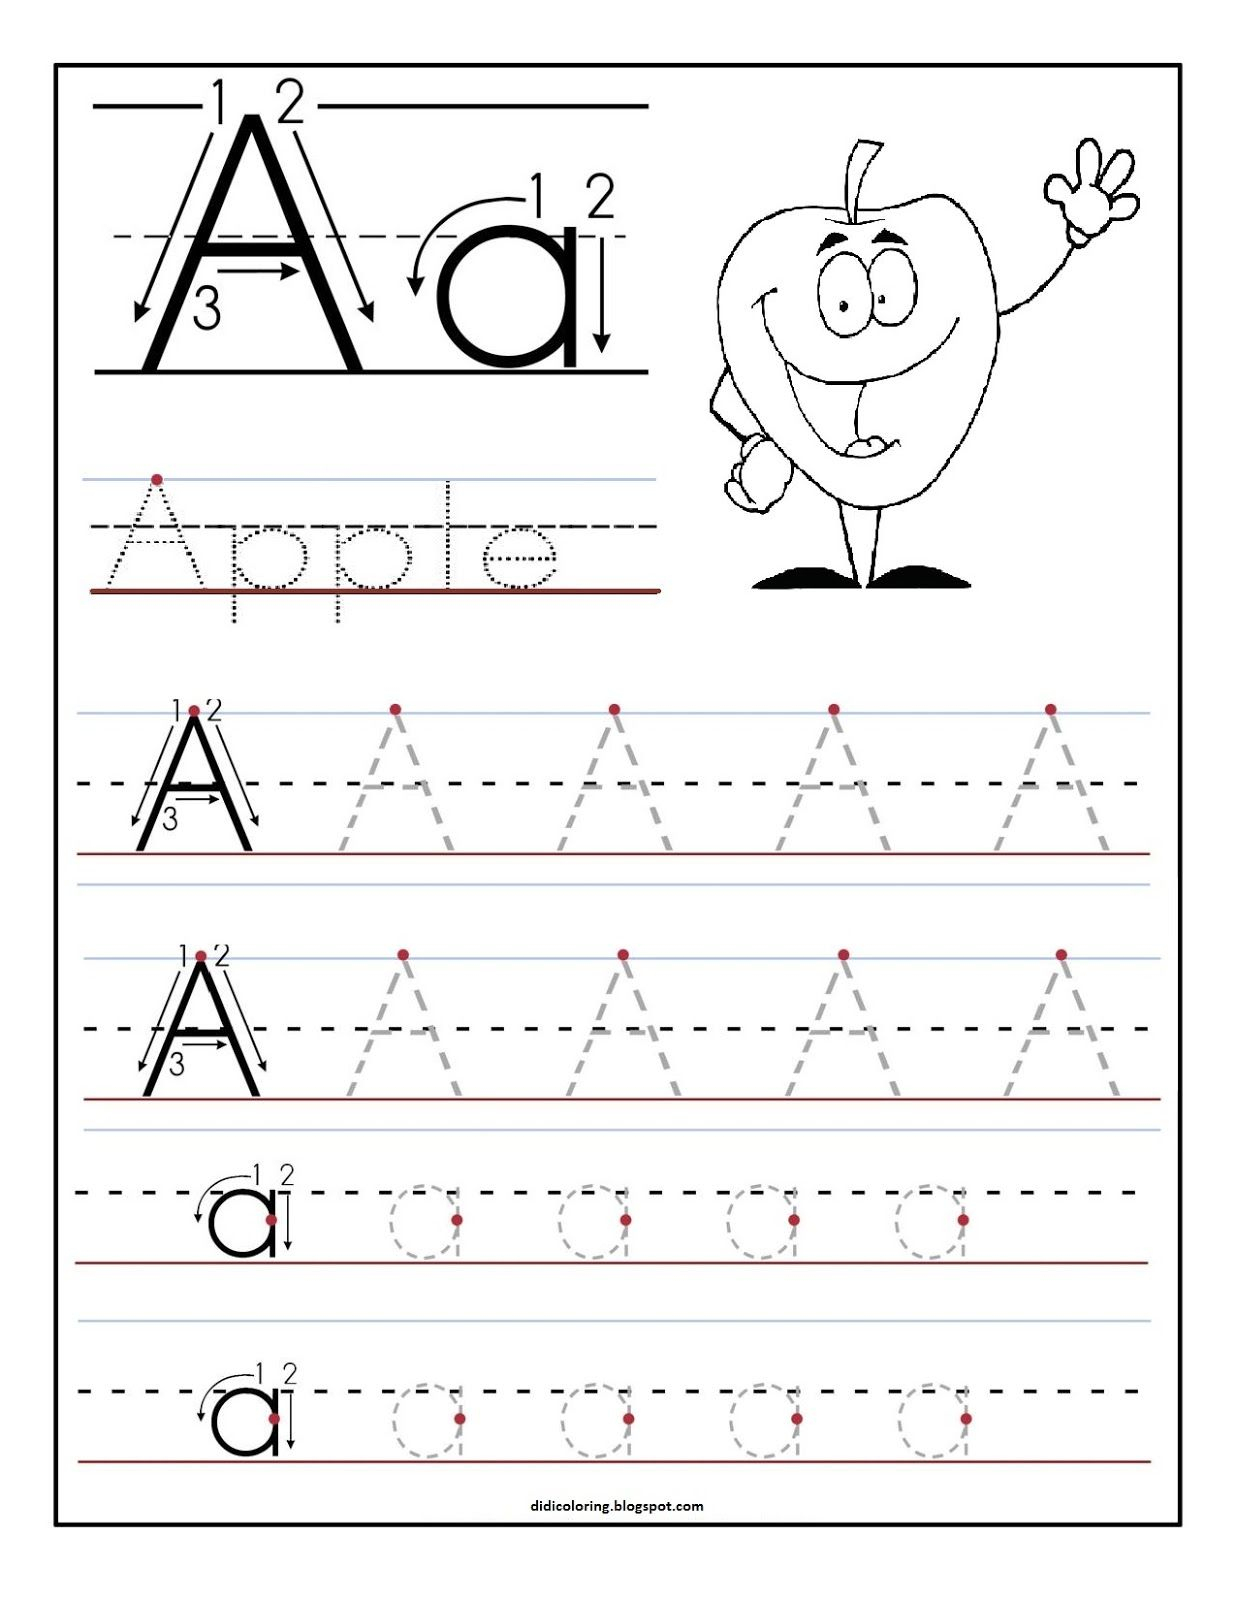 Free Printable Worksheet Letter A For Your Child To Learn And Write - Free Printable Preschool Worksheets For The Letter R